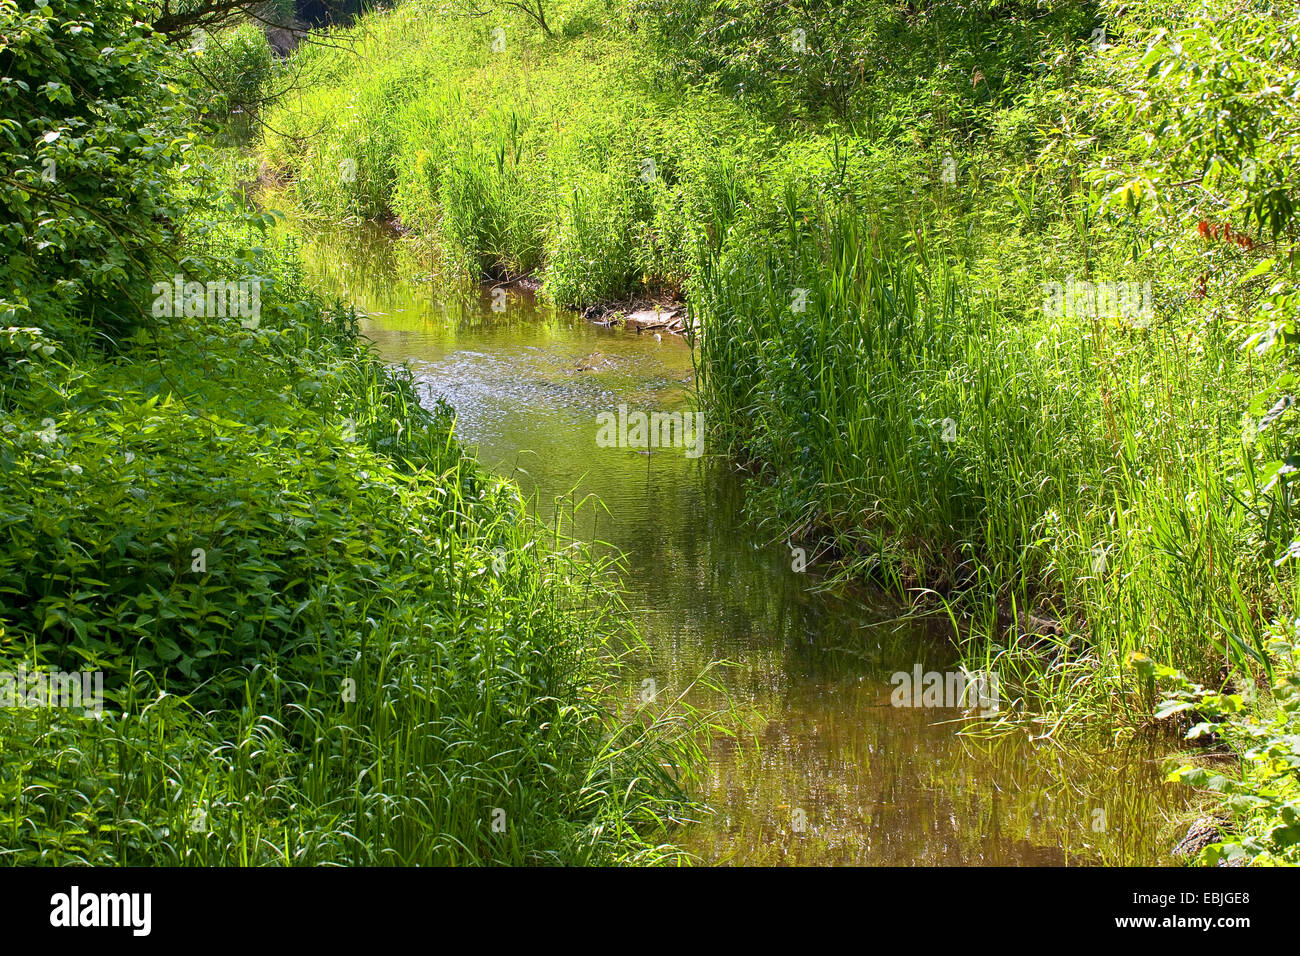 brook through a meadow with affluent riparian vegetation, Germany - Stock Image